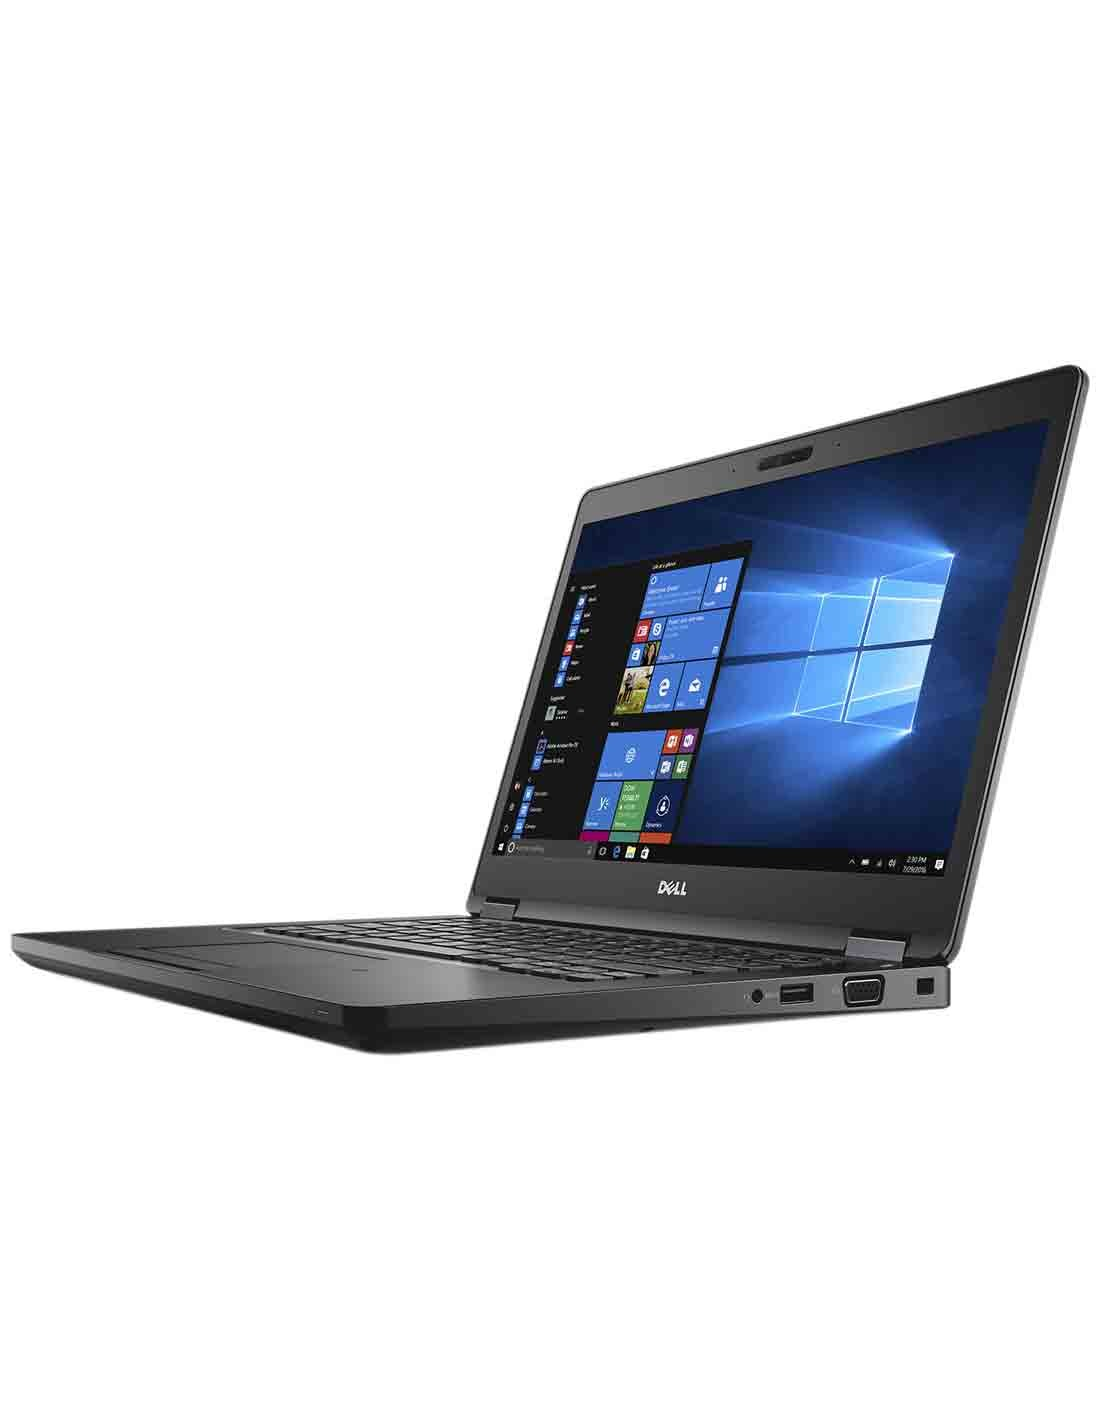 Dell Latitude 5480 Windows 10 Pro 64 images and photos in Dubai online store